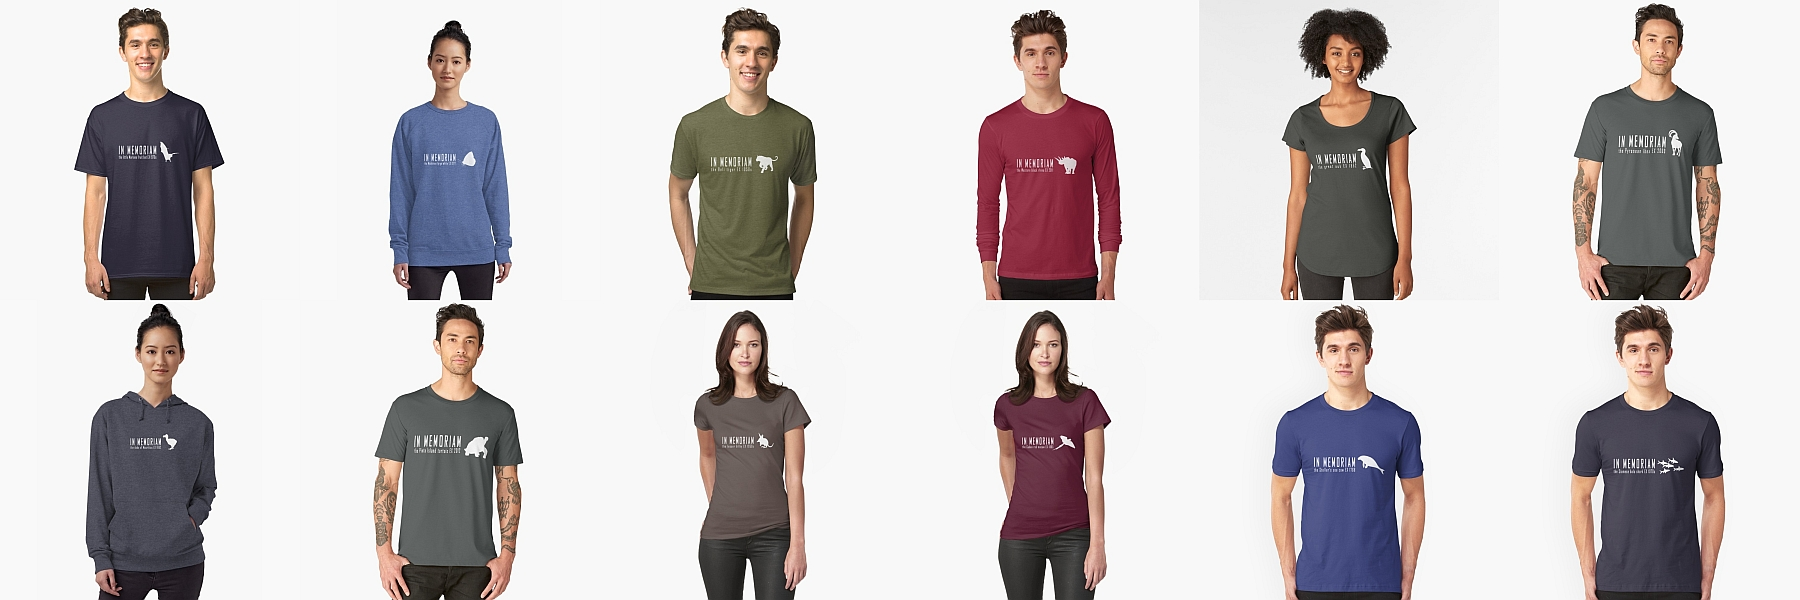 save planet wildlife animals earth t-shirt